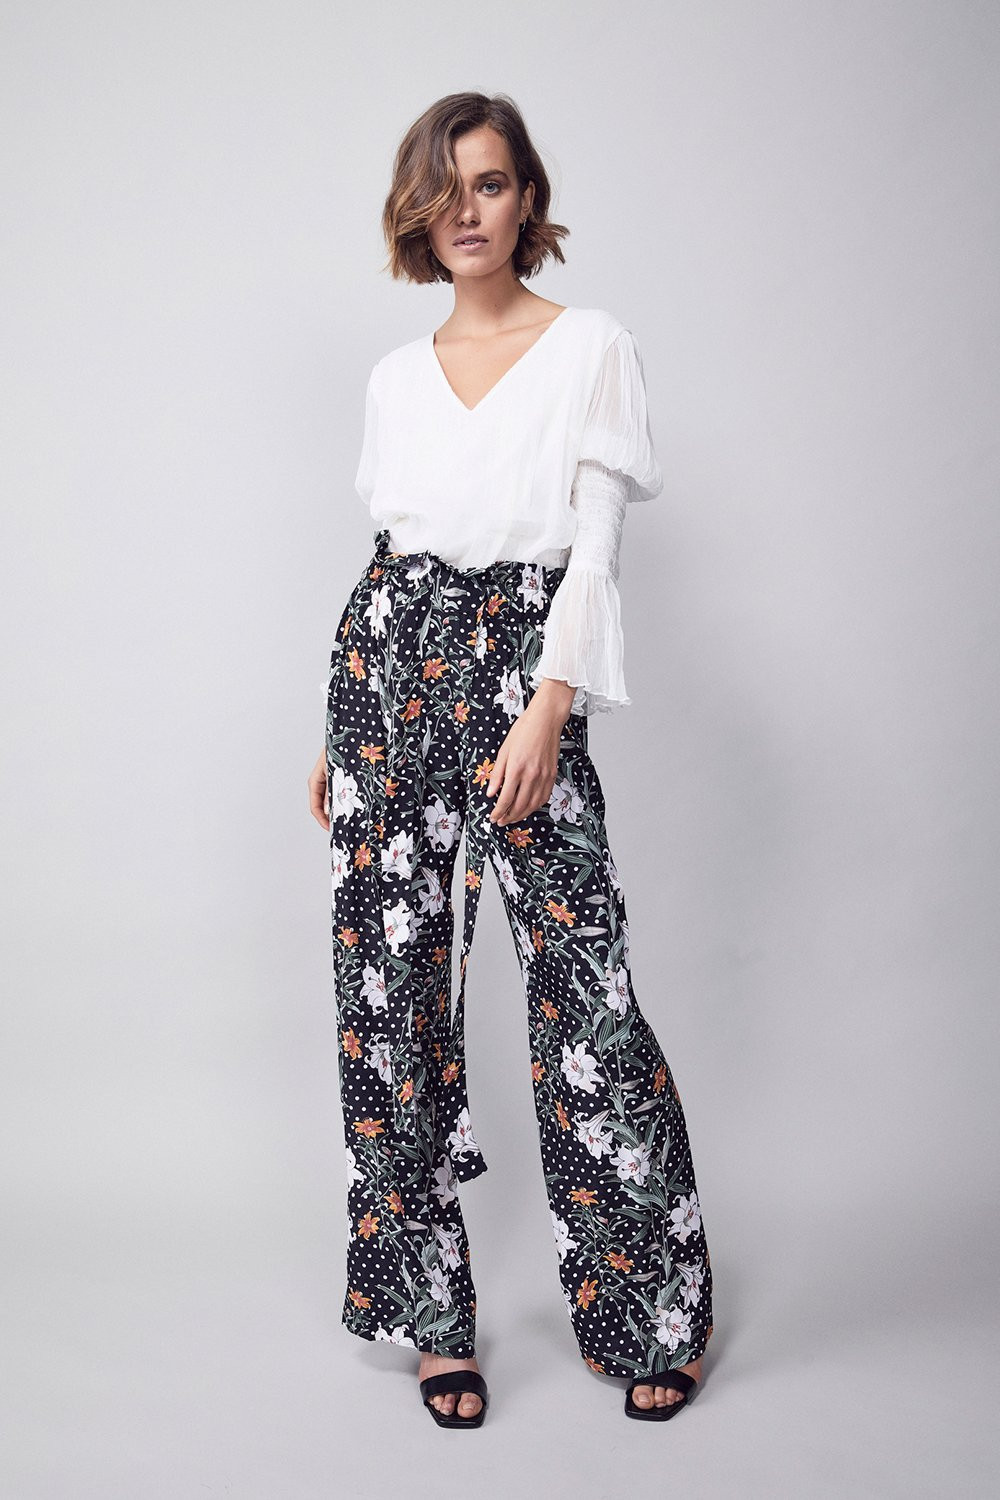 Floral long pants, work fromhome wear. In fashion at home, home style